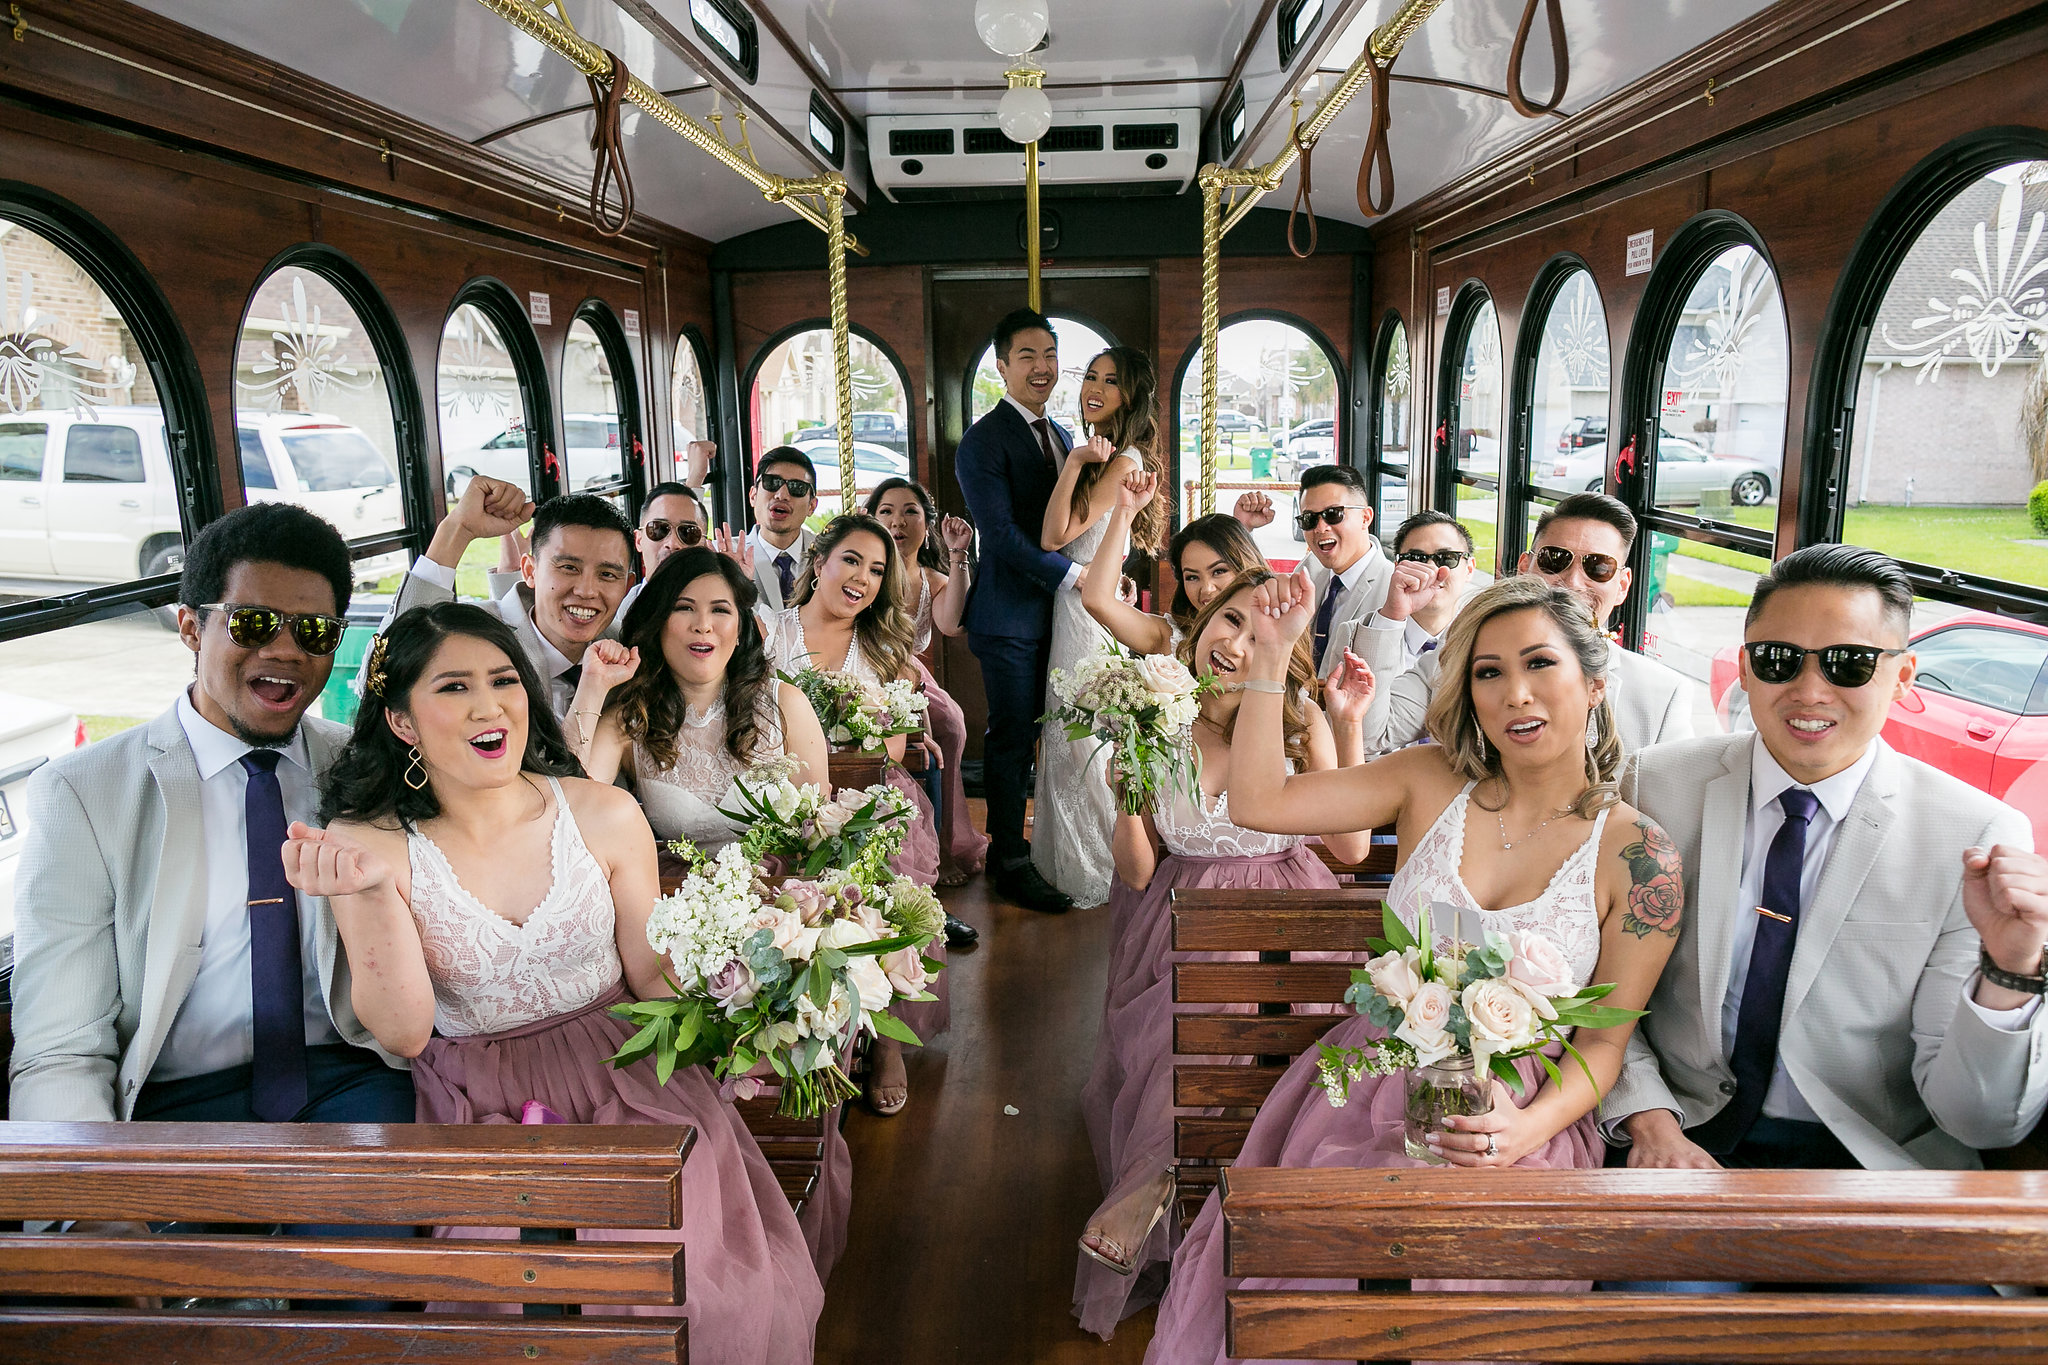 New Orleans Wedding Photography Destination David Kim-2.jpg